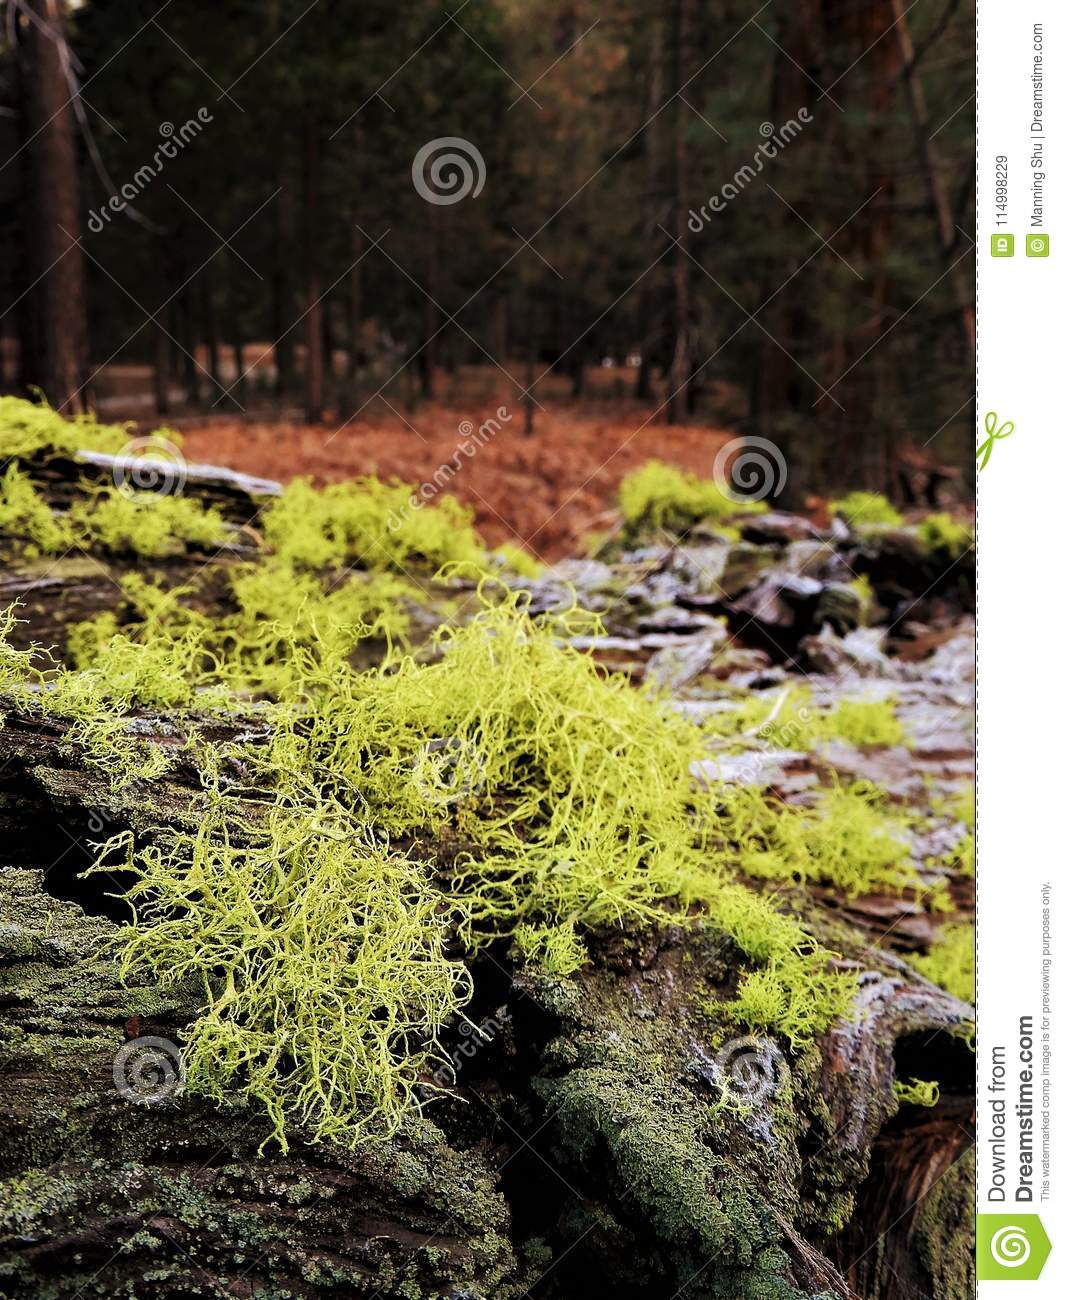 Moss and lichen on bark of fallen tree in forest